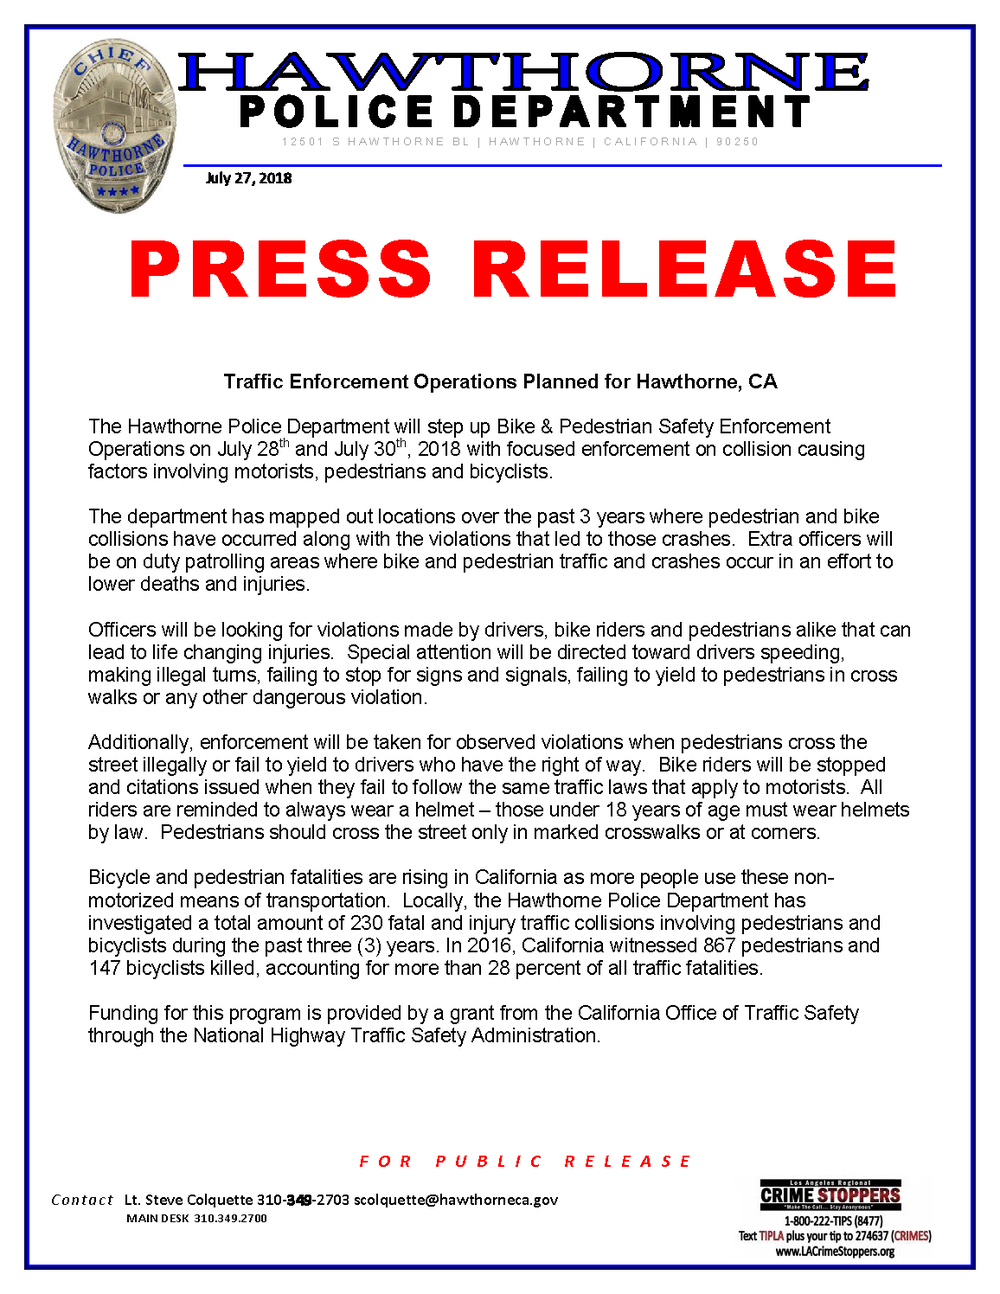 Bike-Ped #1 and #2 Press Release.png